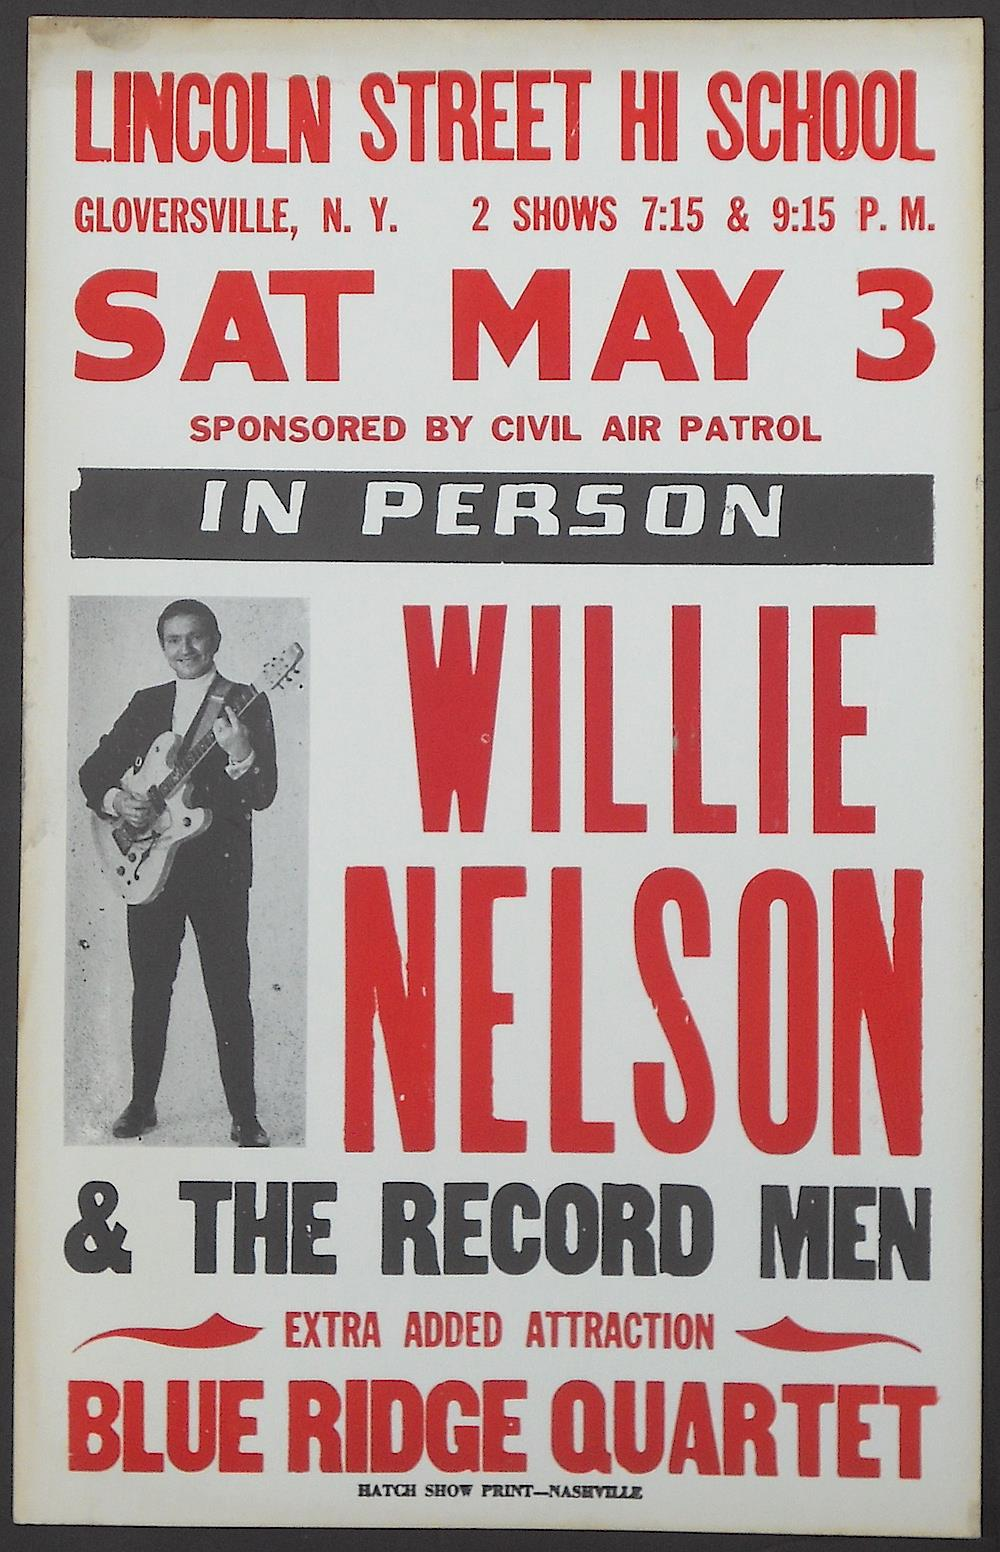 Willie nelson affiche the record men 1969